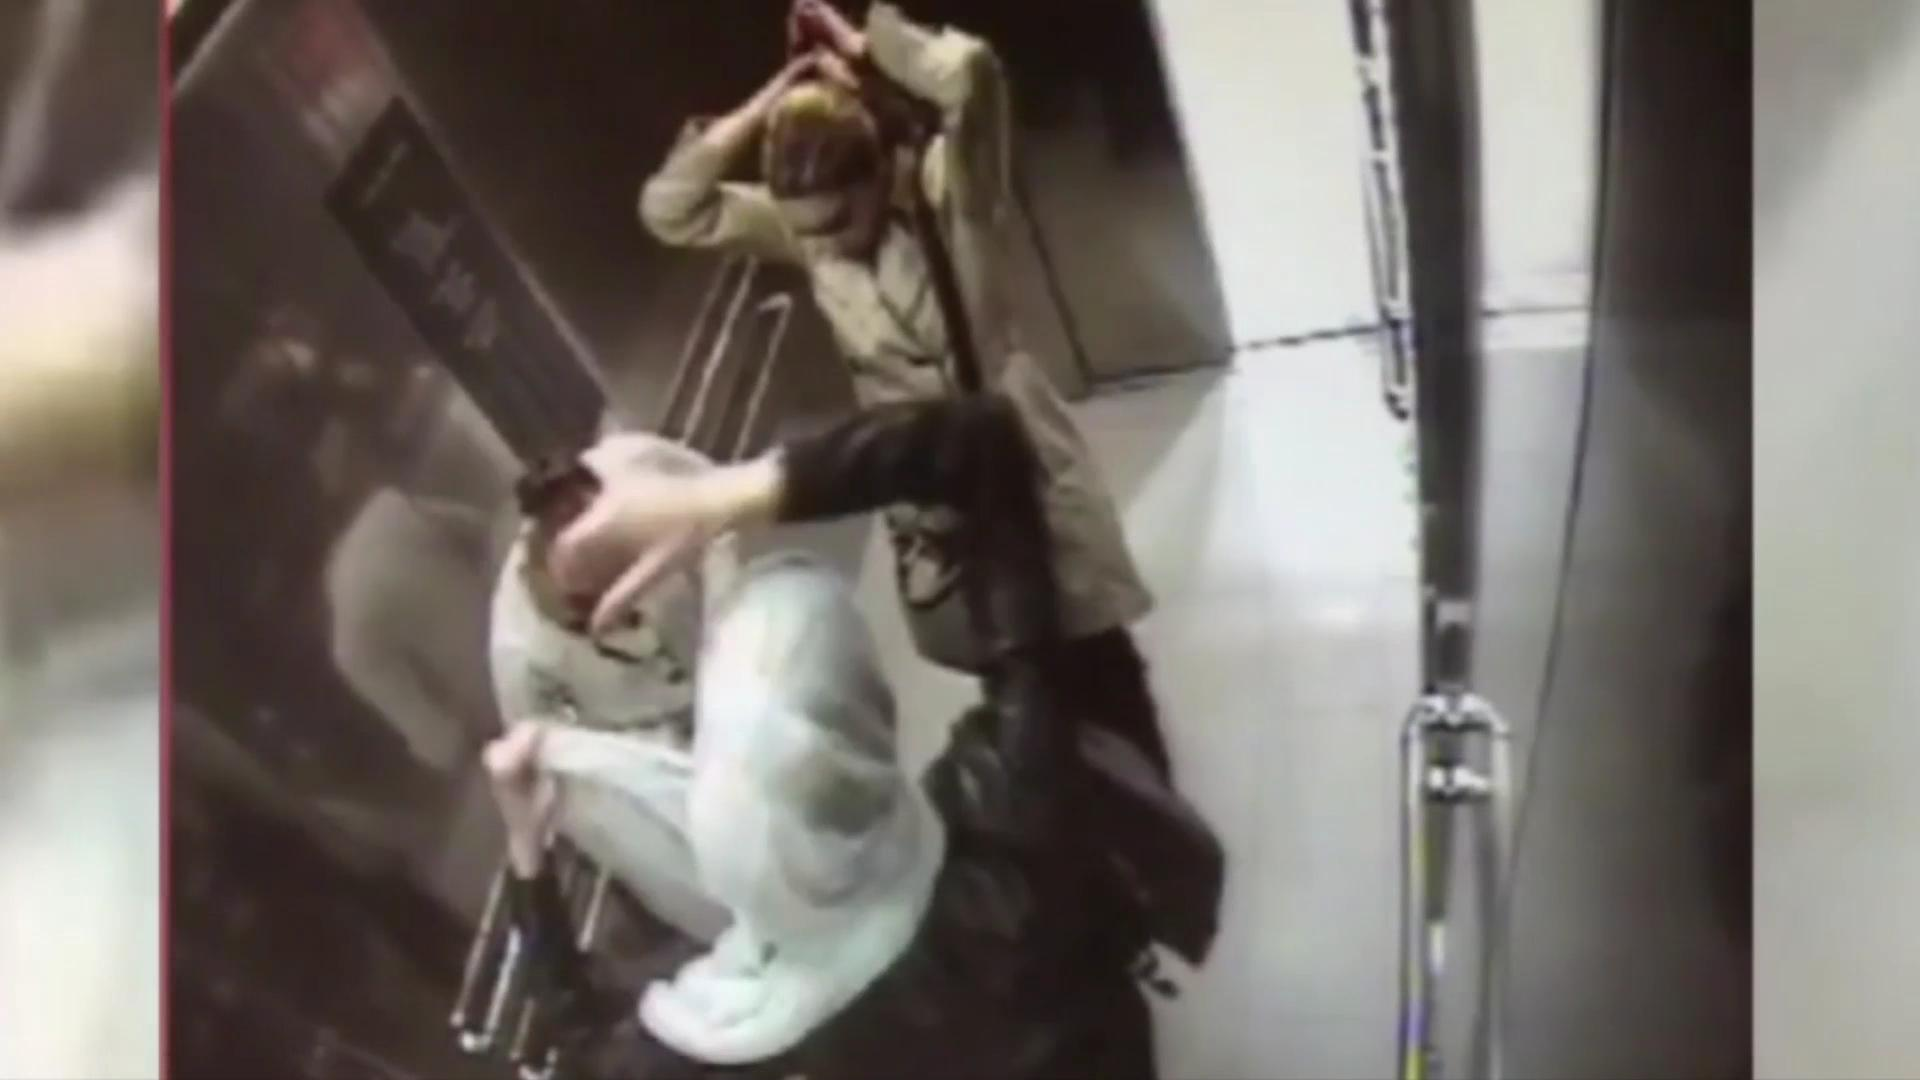 Watch thieves change disguises in elevator